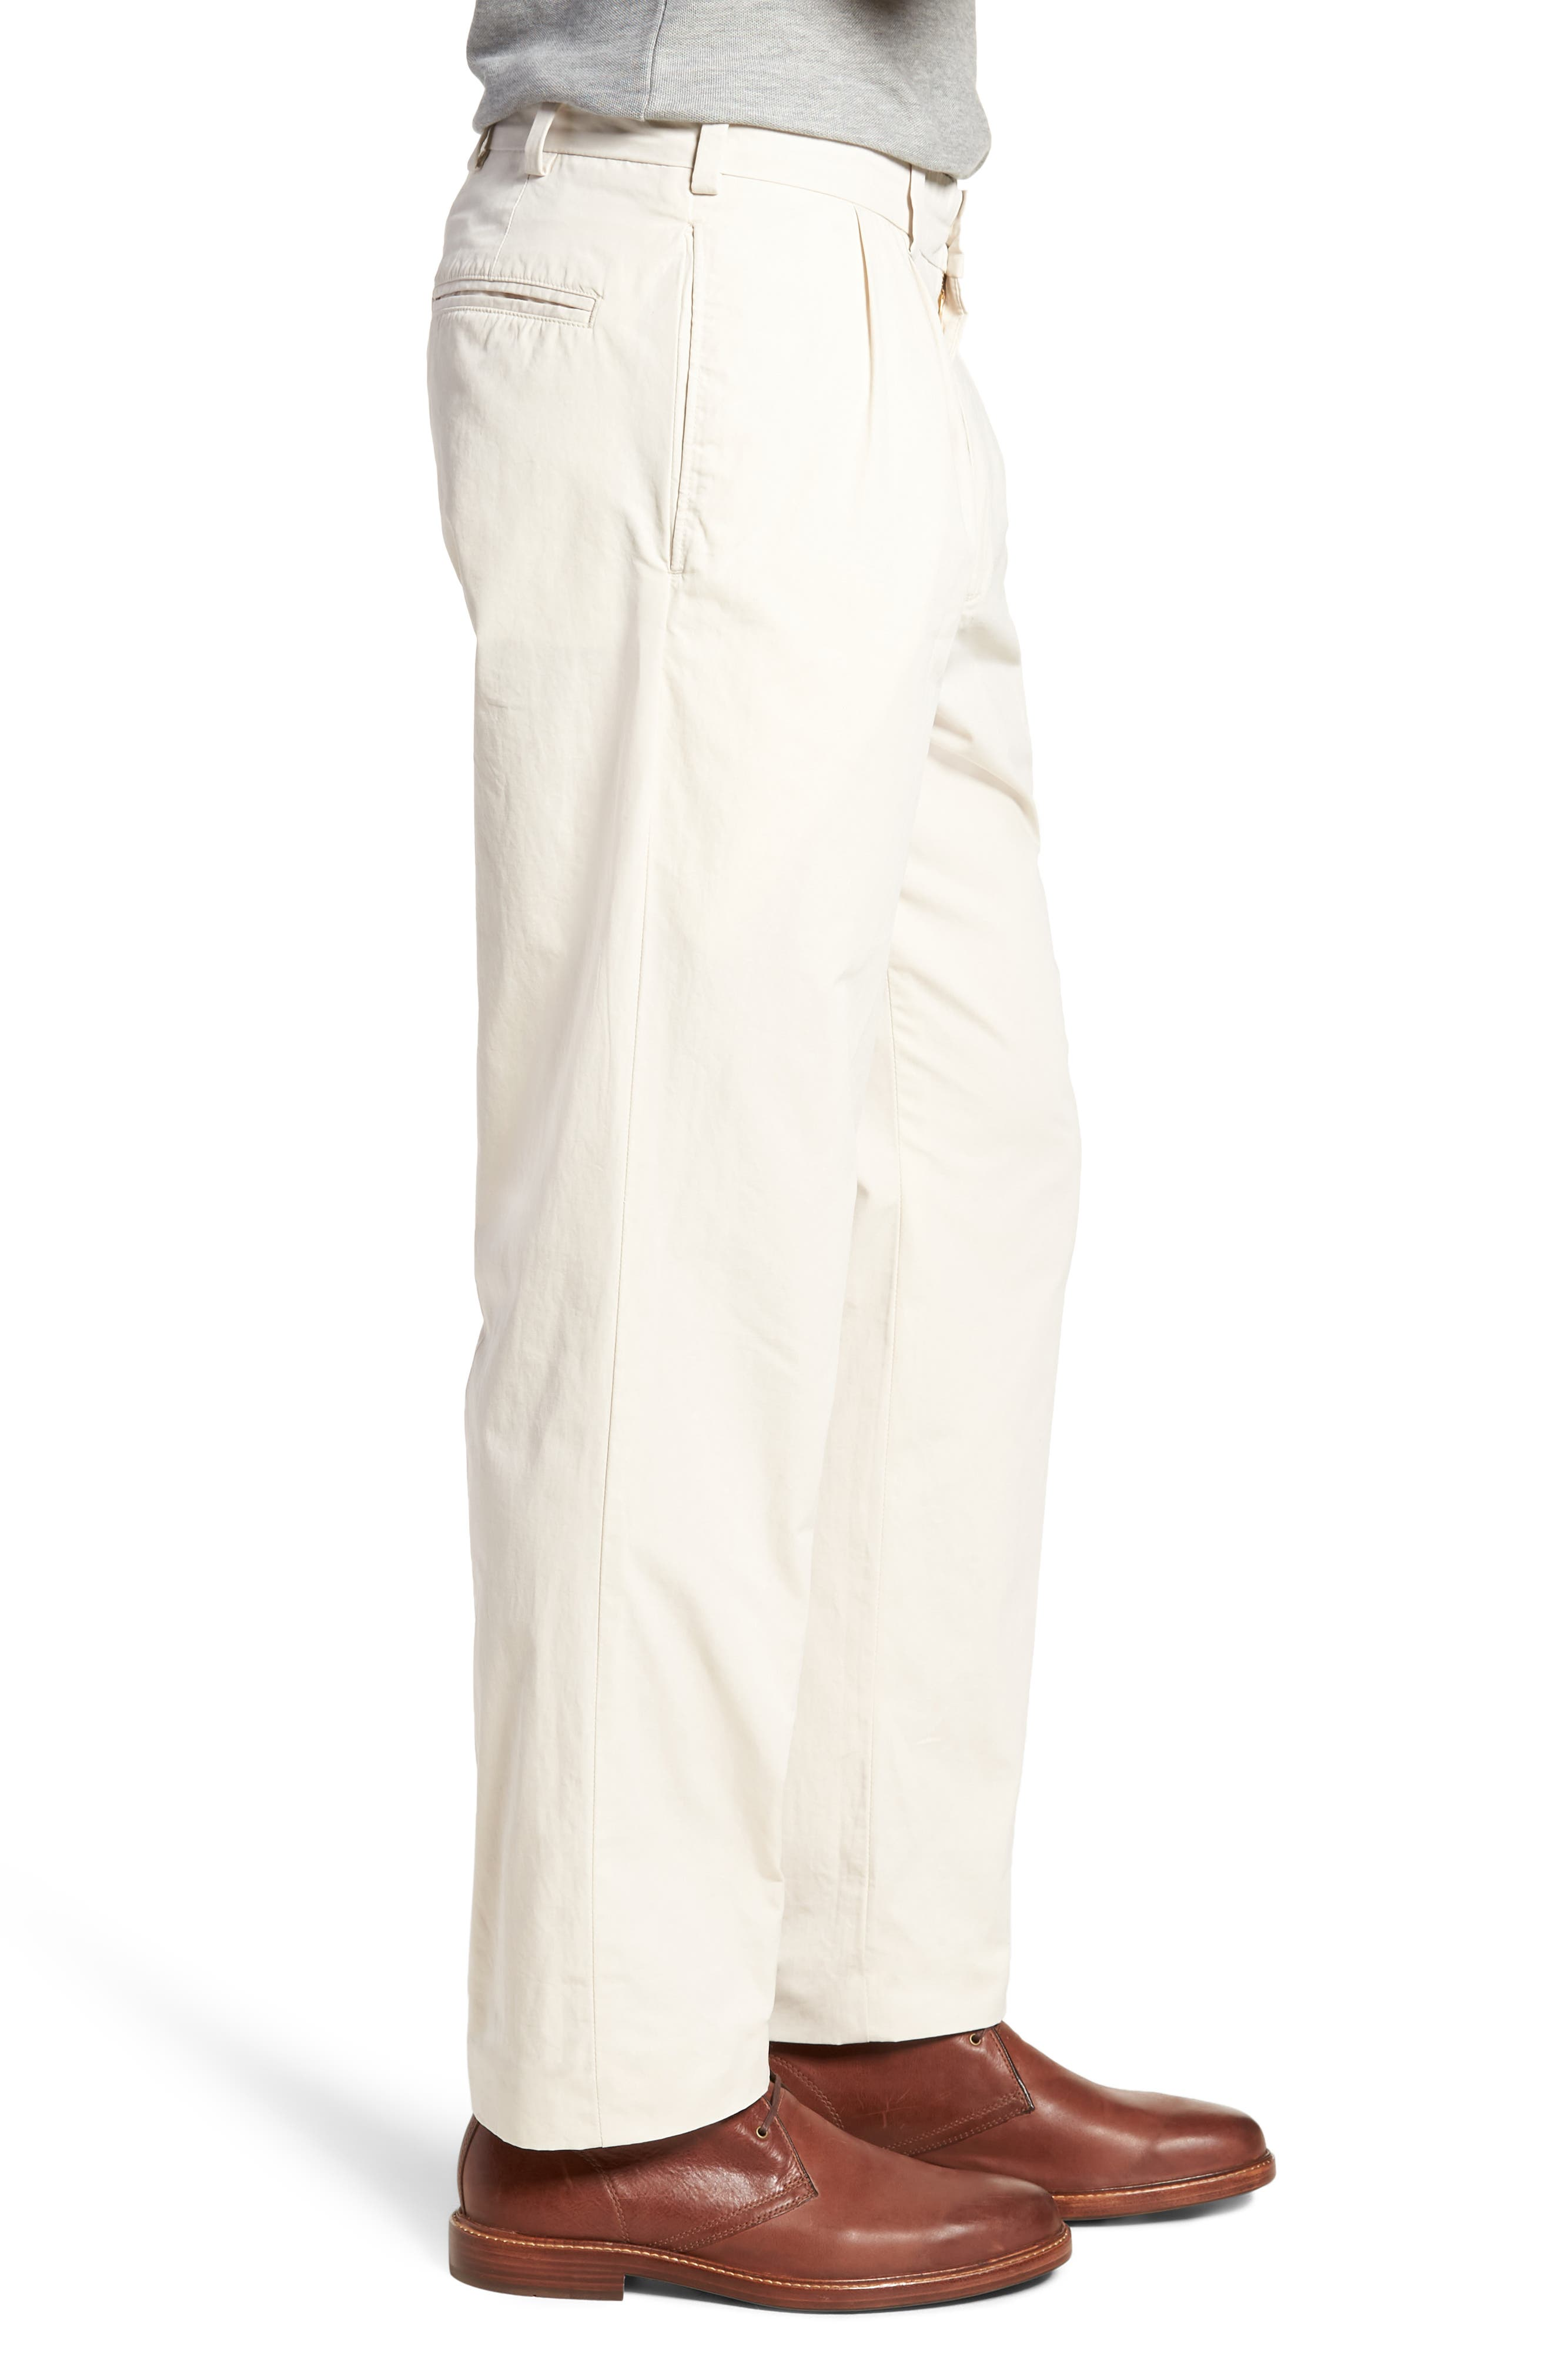 M2 Classic Fit Pleated Tropical Cotton Poplin Pants,                             Alternate thumbnail 3, color,